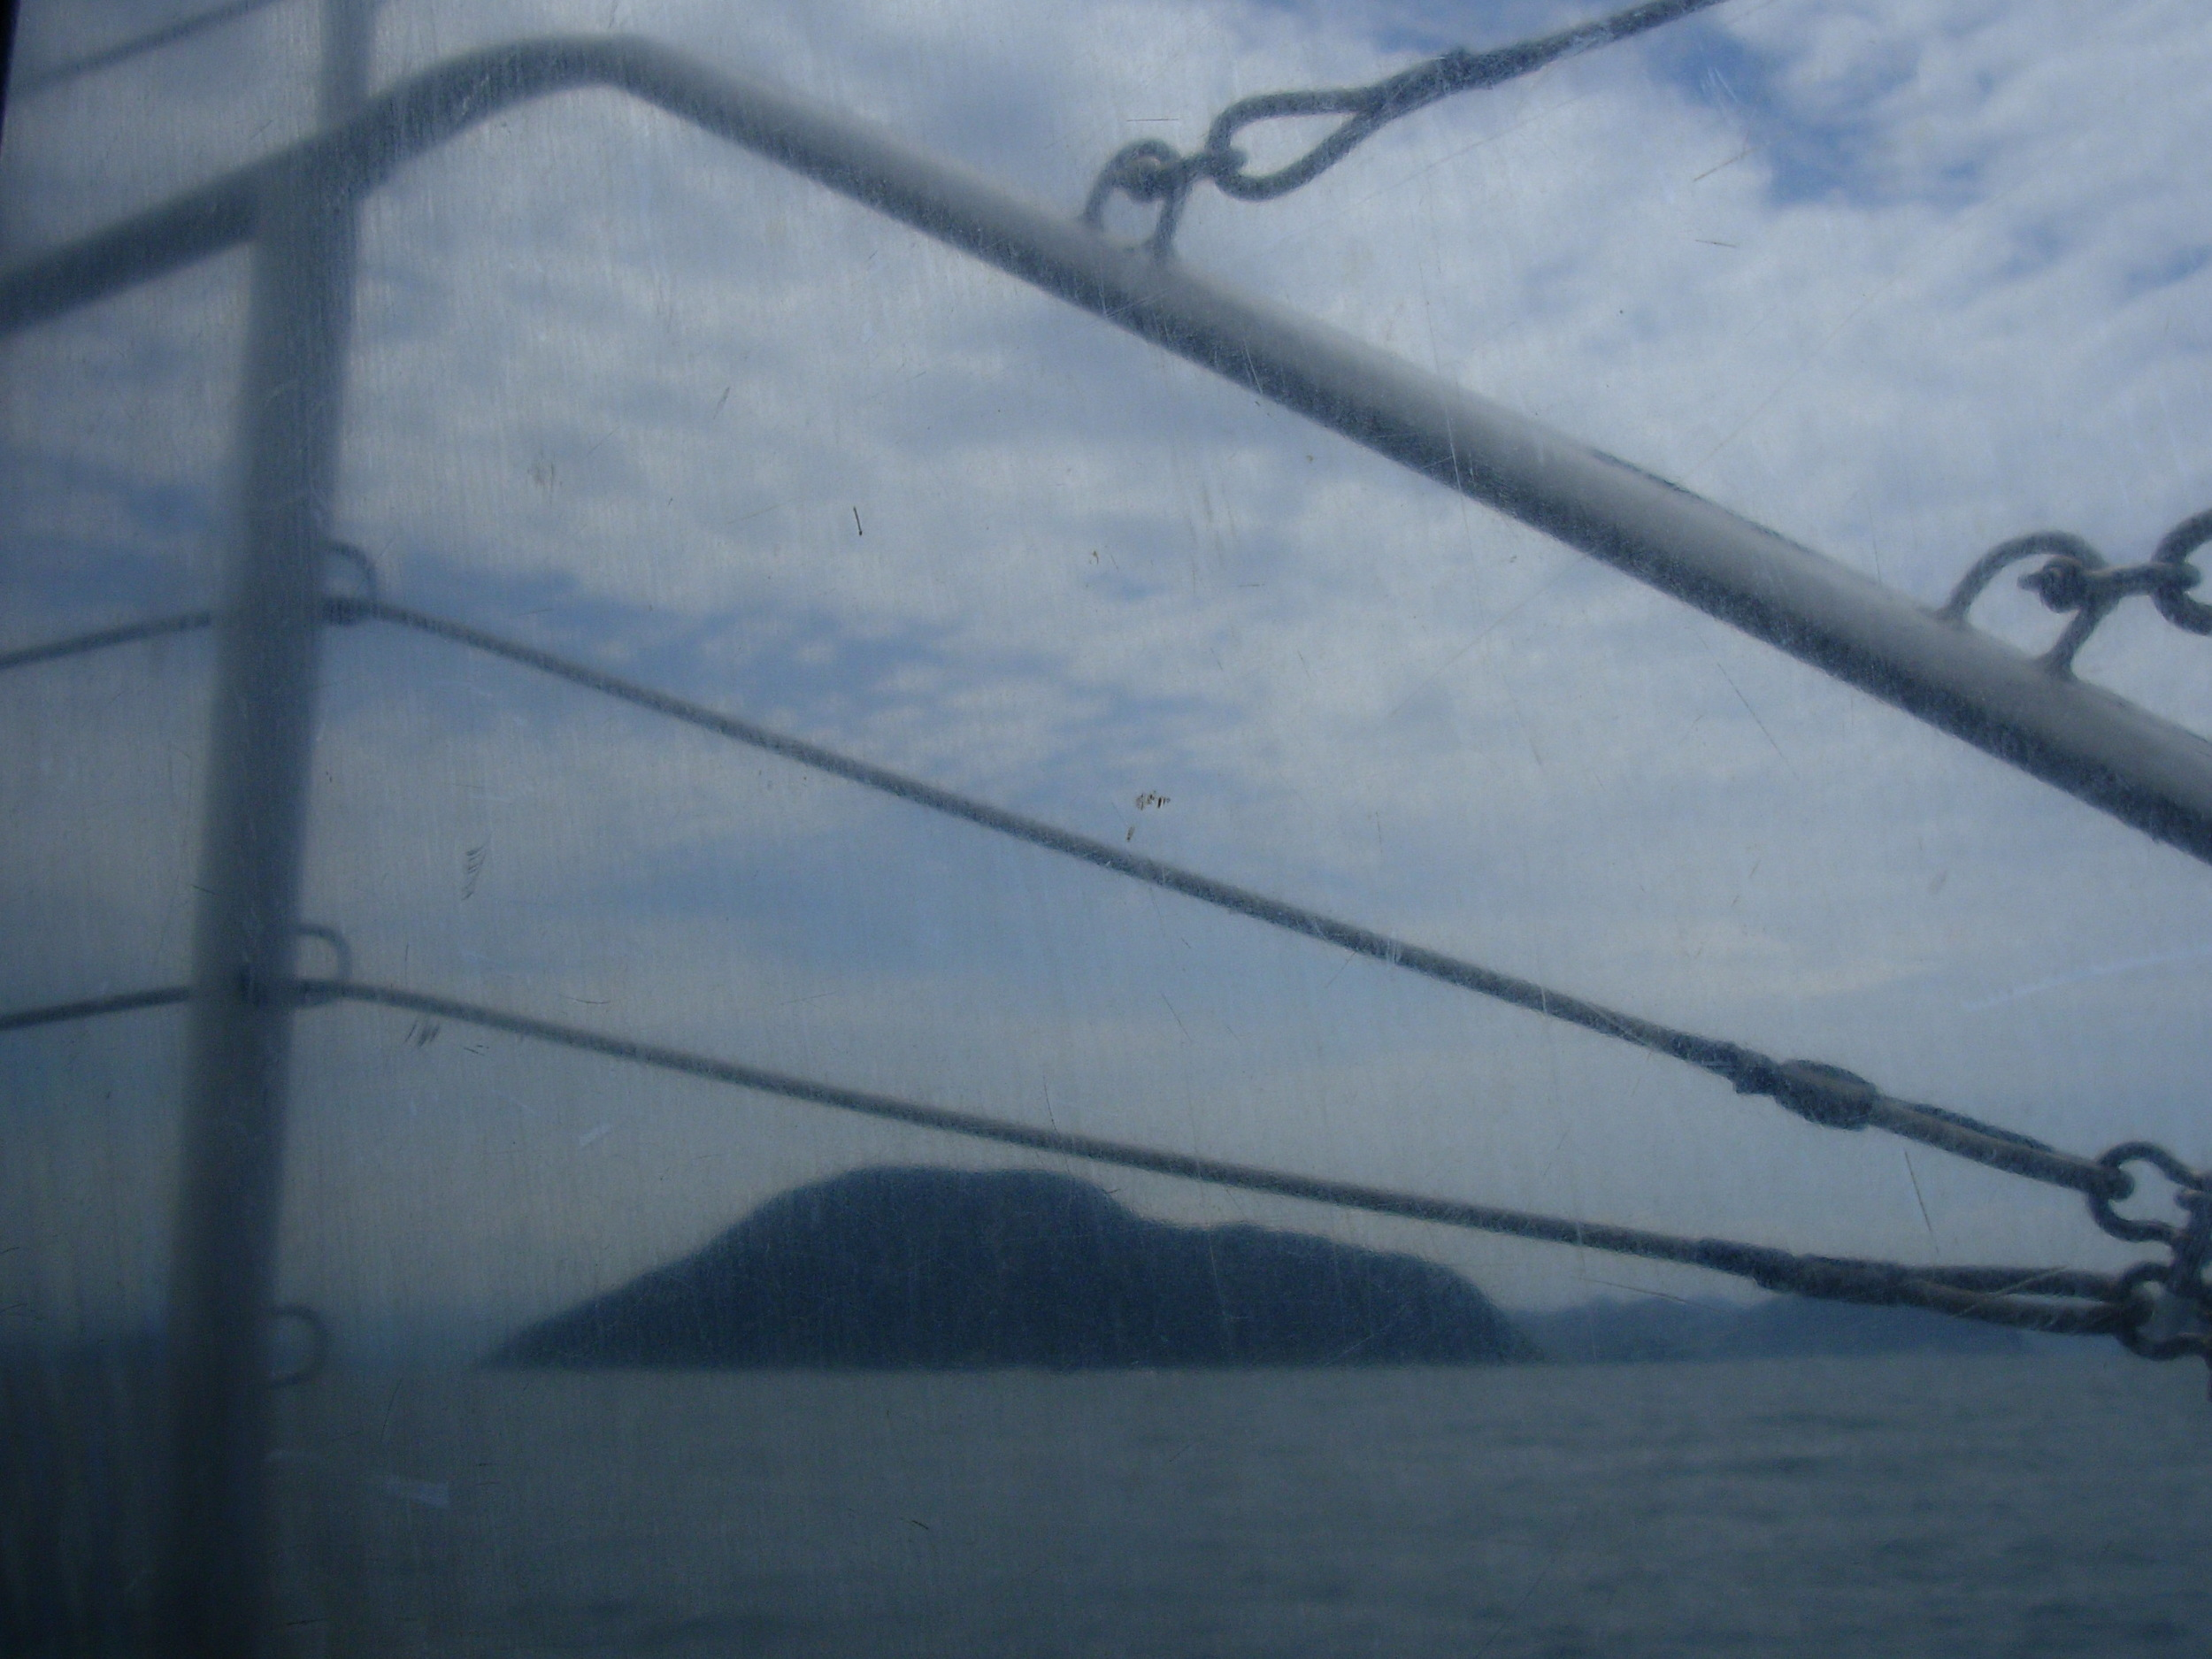 taking the ferry from Busan to Fukuoka